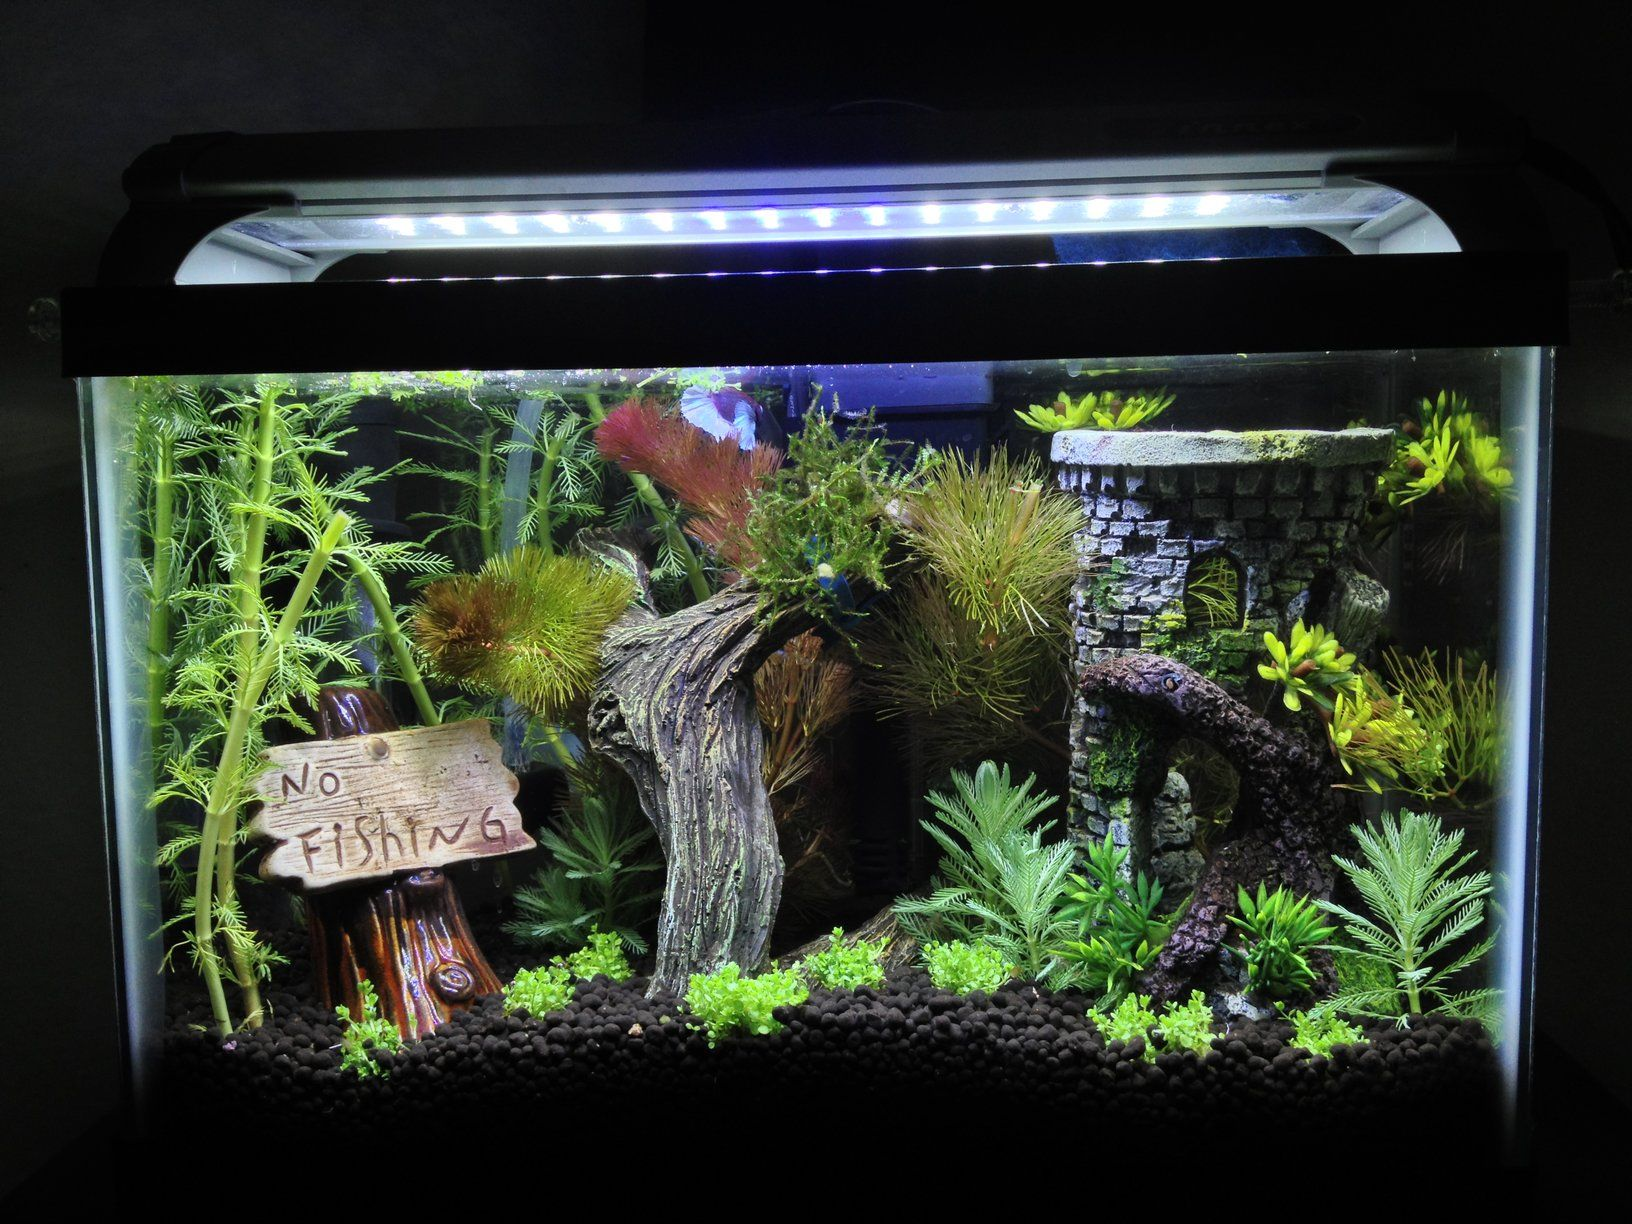 Aquarium fish 5 gallon tank - 2 5 Gallon Heavily Planted Betta Aquarium 145576